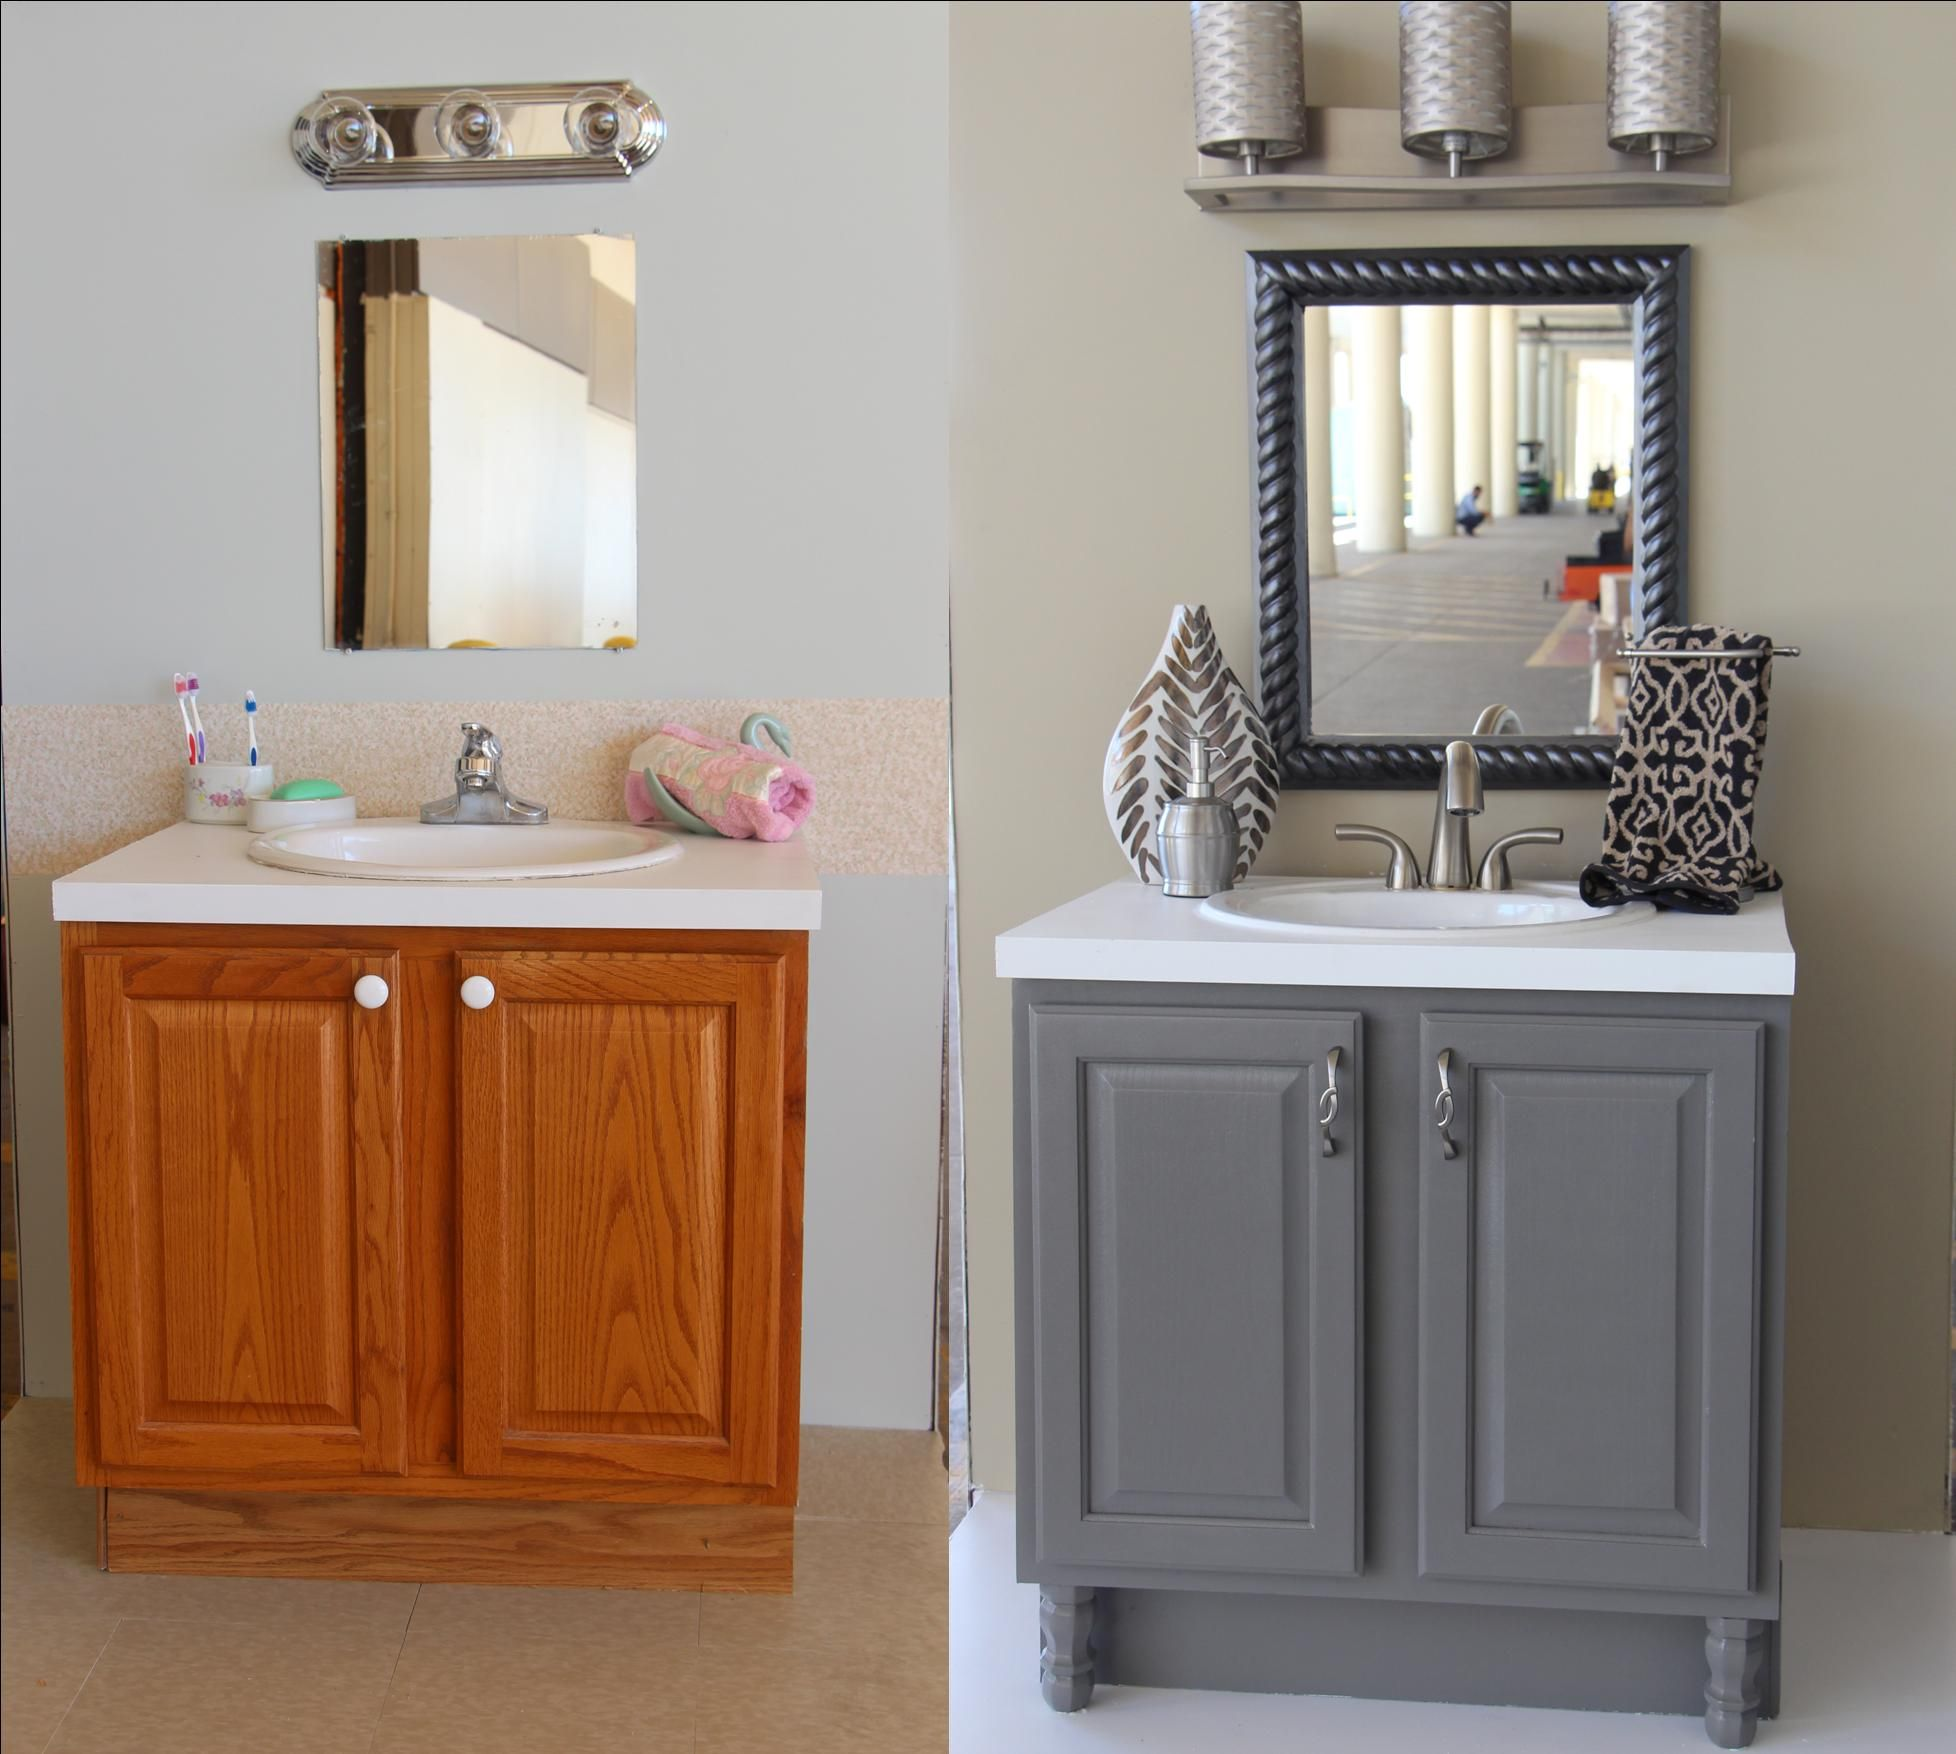 Bathroom Updates You Can Do This Weekend Bathroom Makeover Diy Bathroom Bathroom Decor